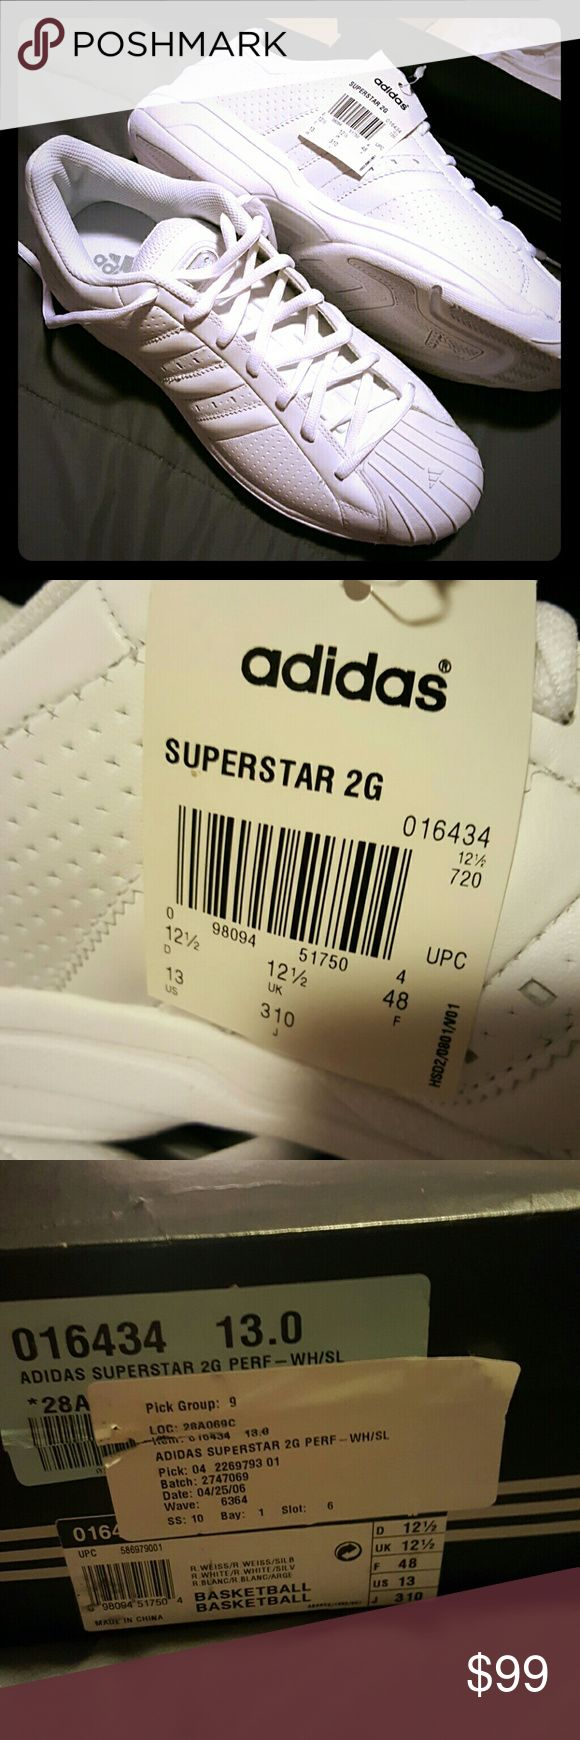 Mens adidas superstar sneakers adidas superstars- new in box never worn Adidas Shoes Sneakers